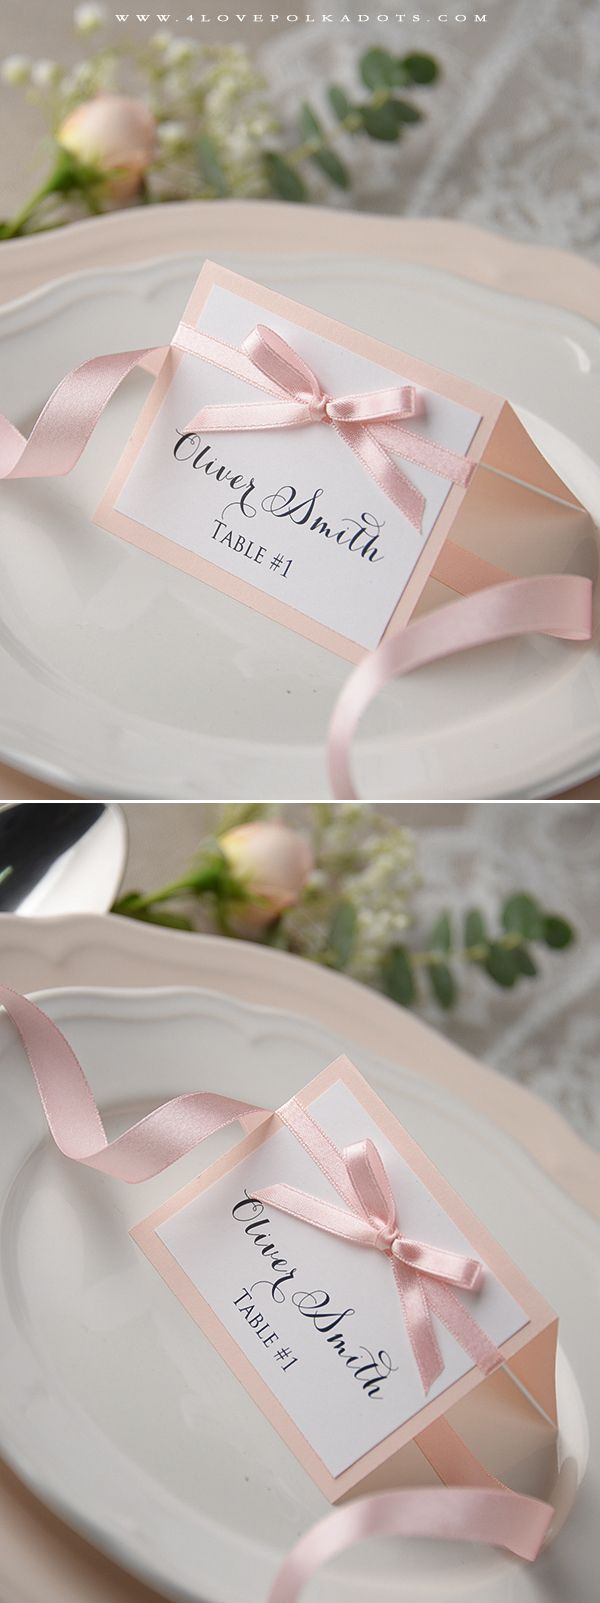 67 best Escort/place card ideas images on Pinterest | Diy wedding ...